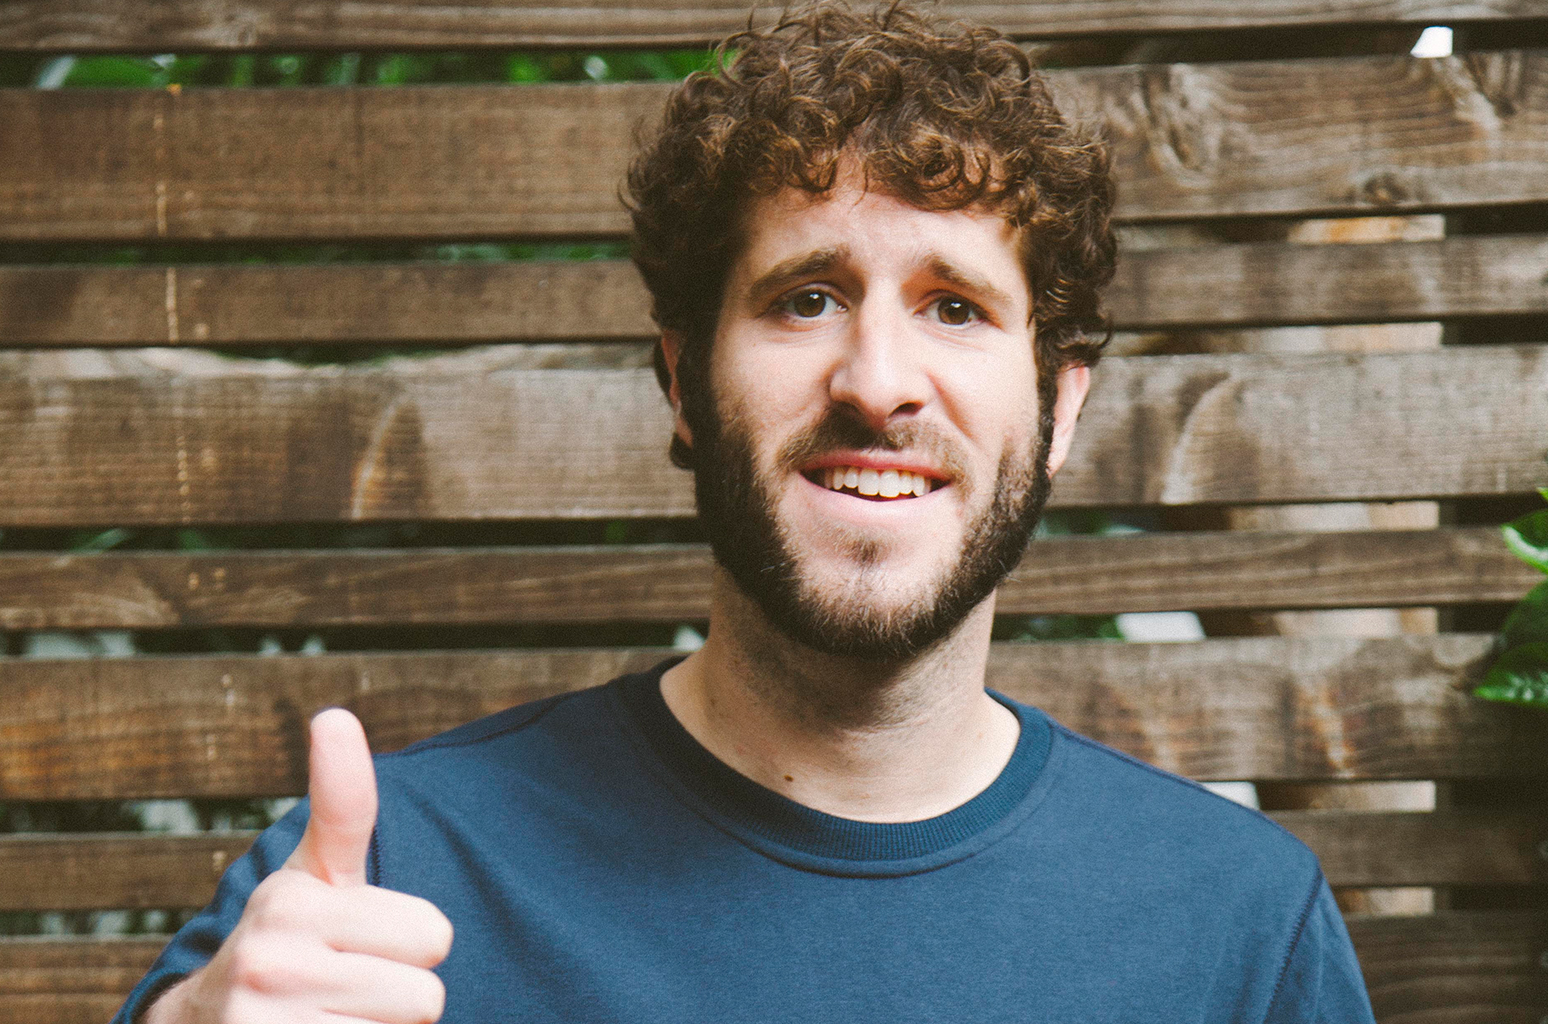 lil dicky net worth forbes